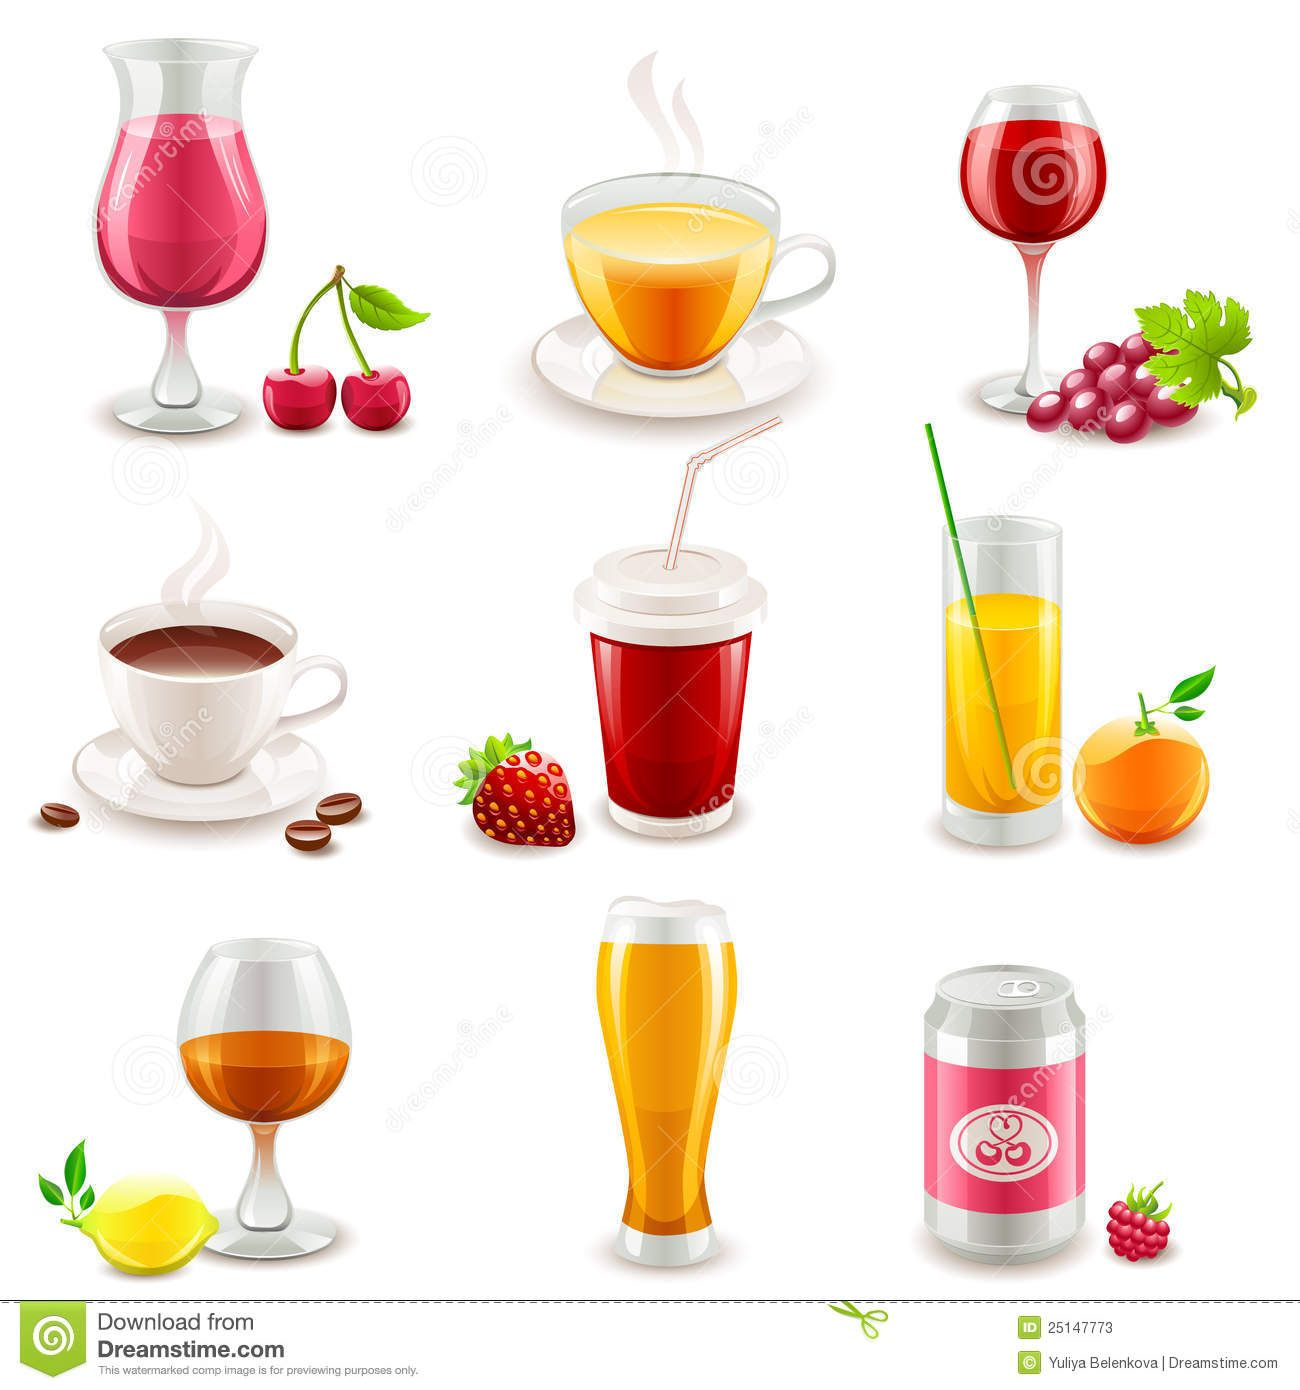 Drink Icons - Download From Over 28 Million High Quality Stock Photos, Images, Vectors. Sign up for FREE today. Image: 25147773